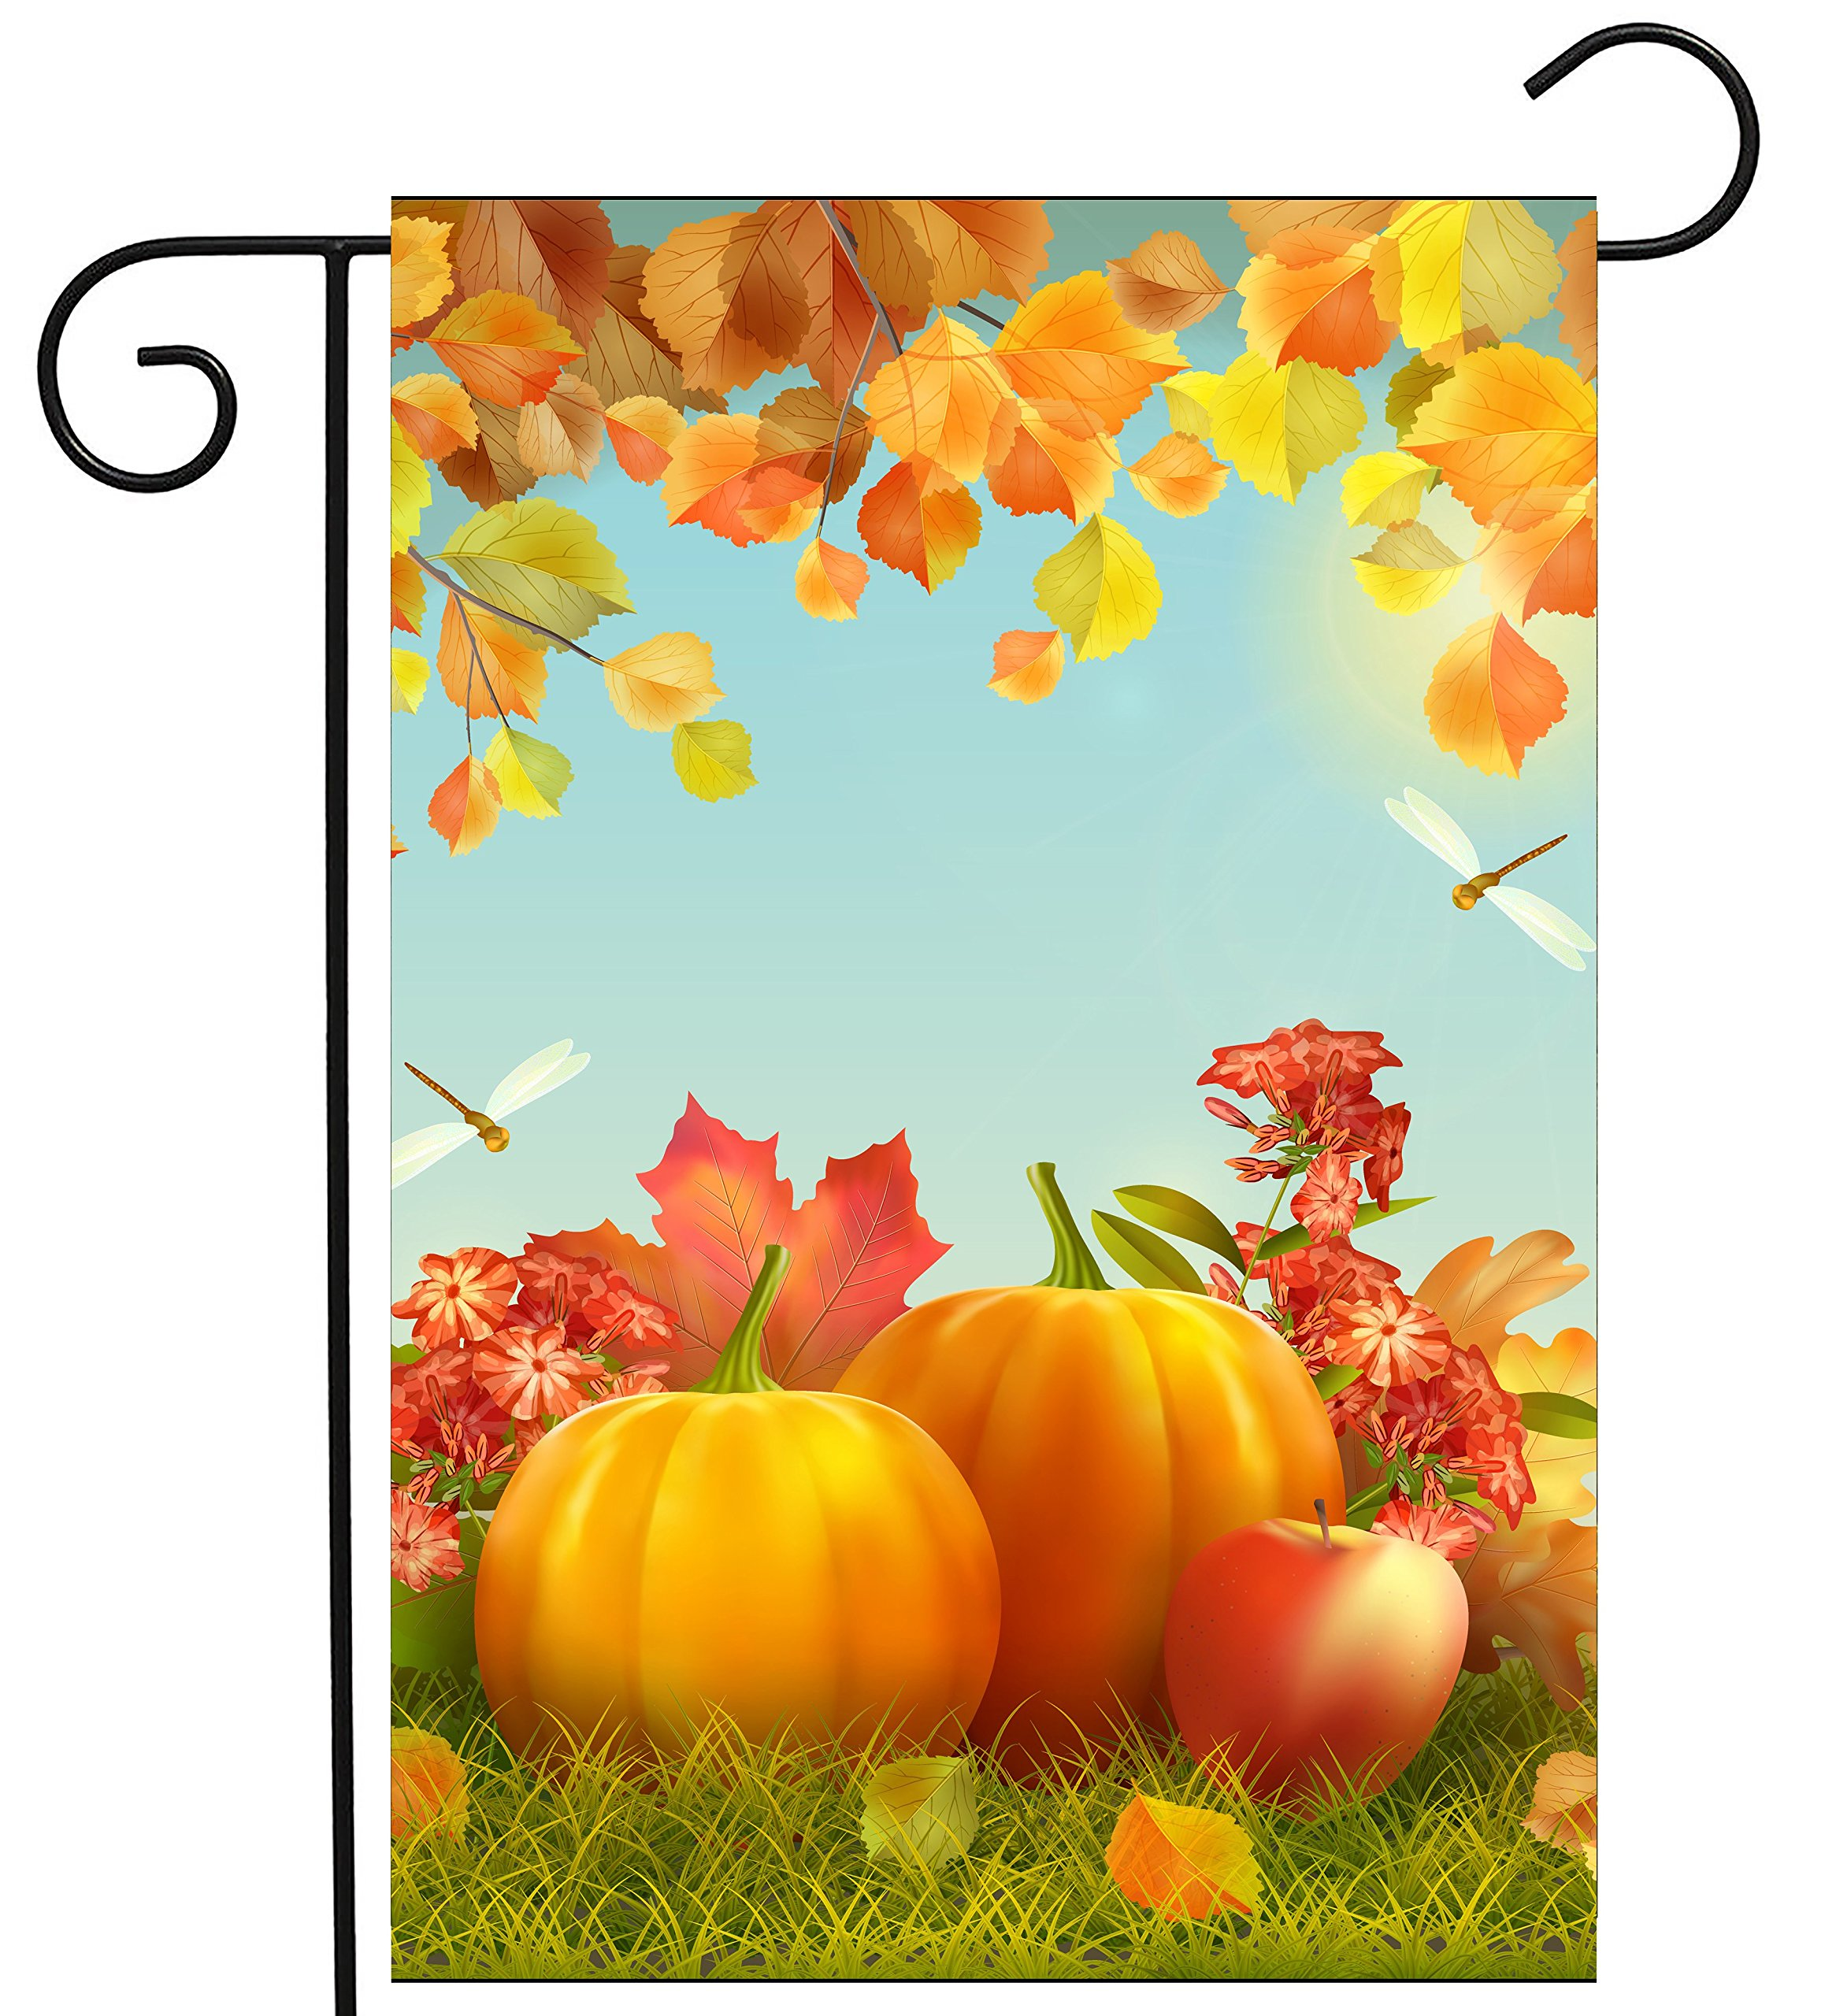 ShineSnow Harvest Autumn Pumpkin Apple Dragonfly Garden Yard Flag 12''x 18'' Double Sided, Polyester Thanksgiving Festival Fall Leaves Welcome House Flag Banners for Patio Lawn Outdoor Home Decor